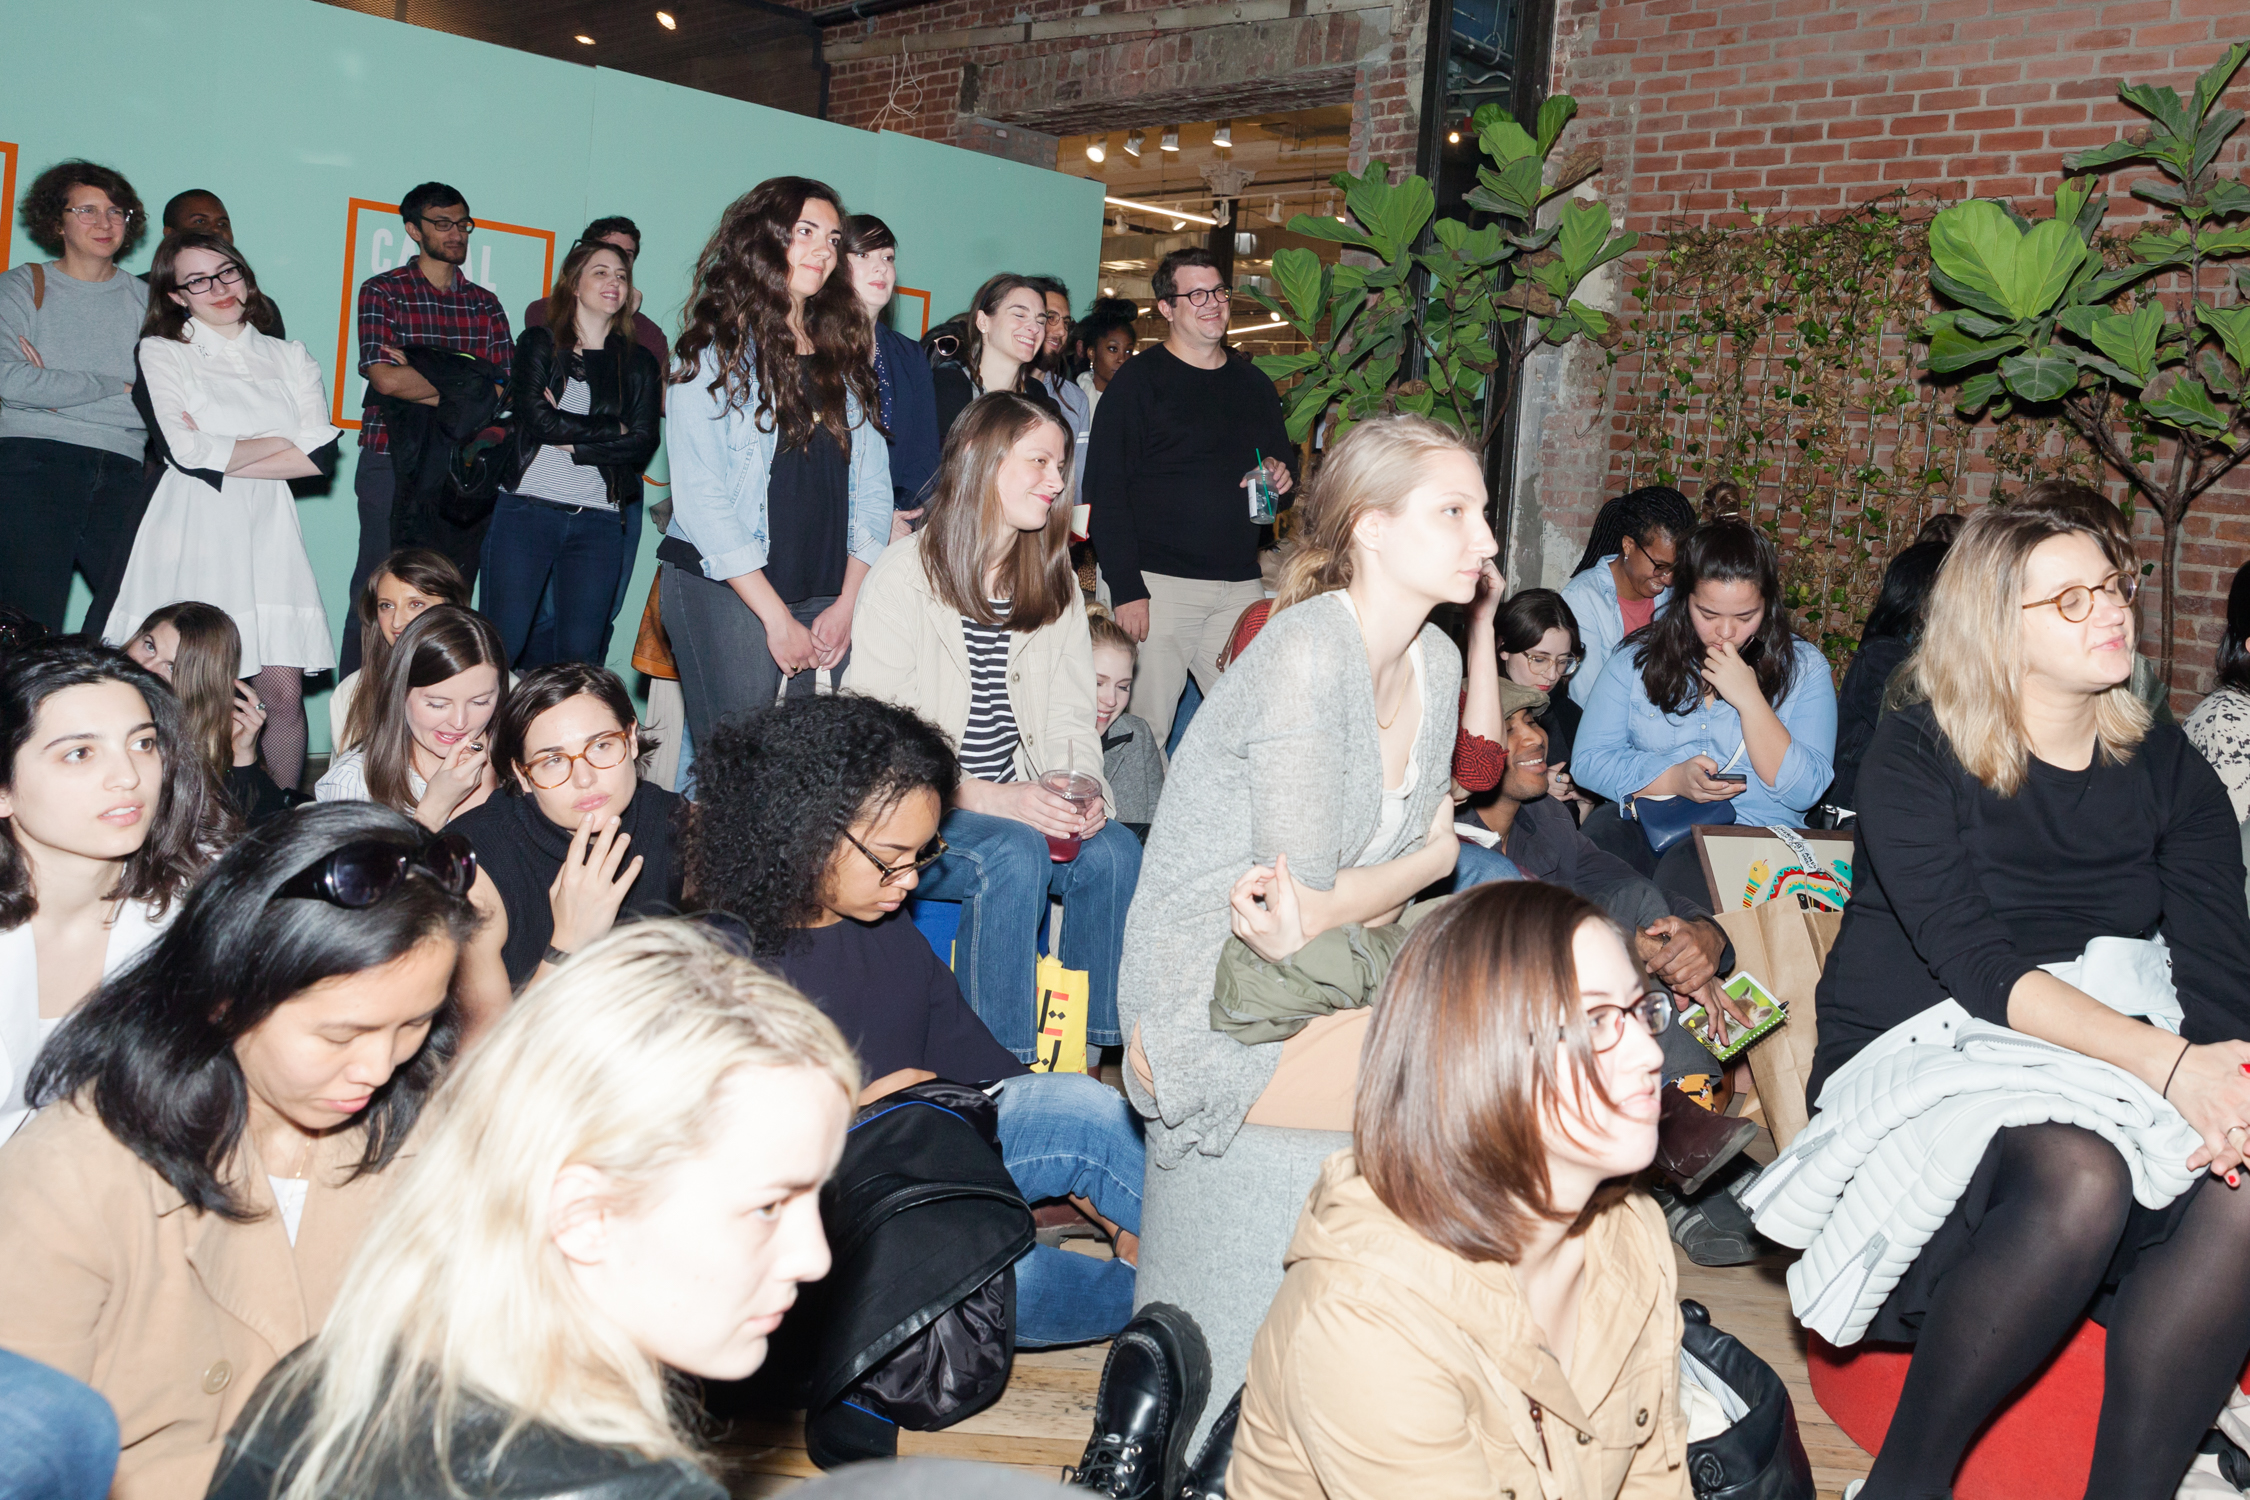 Photos from the launch event in partnership with Floyd, Sonos & Lomography